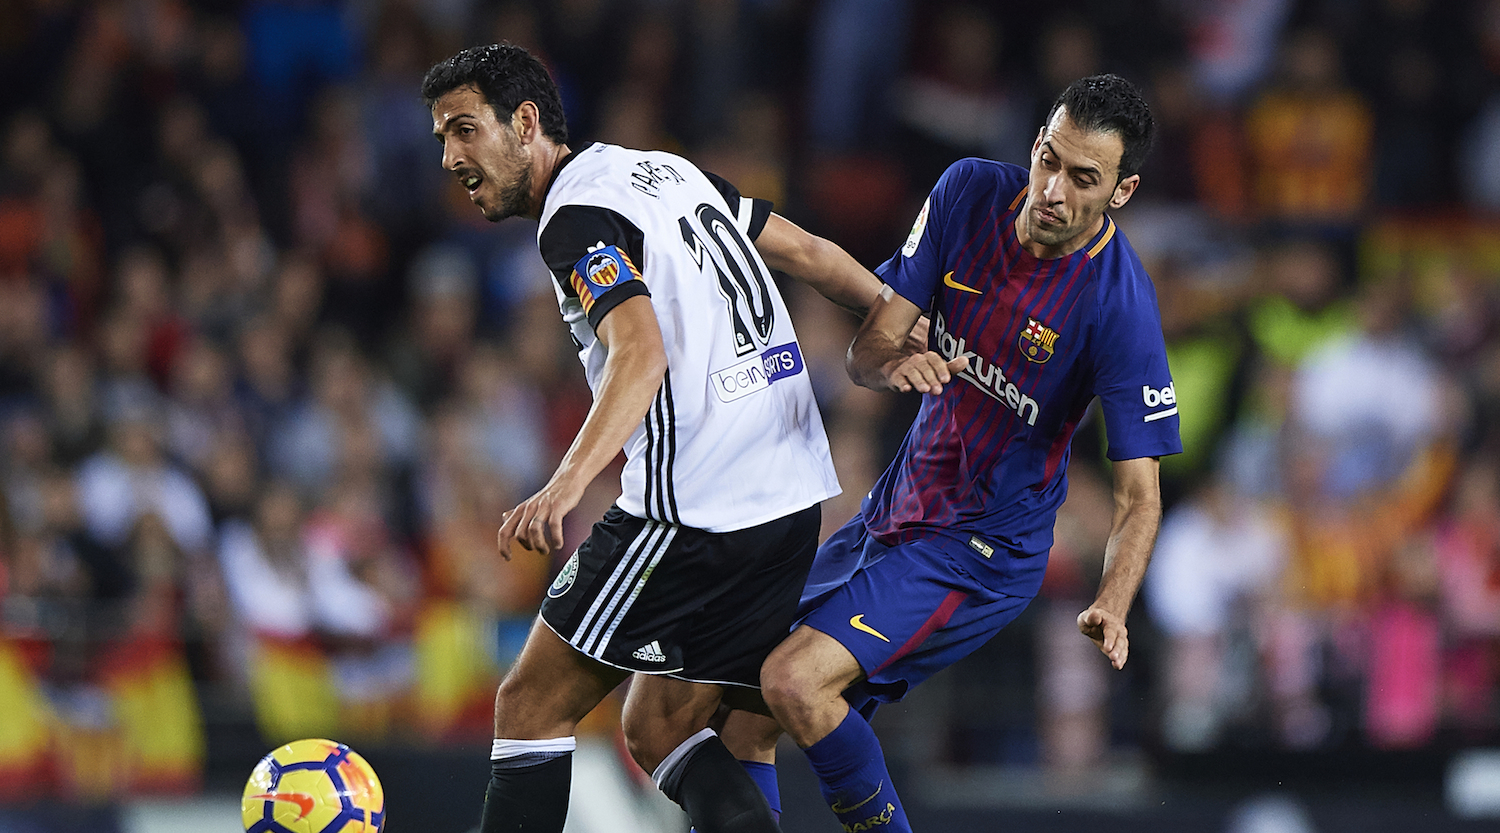 VALENCIA, SPAIN - NOVEMBER 26: Daniel Parejo (L) of Valencia competes for the ball with Sergio Busquets of Barcelona during the La Liga match between Valencia and Barcelona at Estadio Mestalla on November 26, 2017 in Valencia, Spain. (Photo by Fotopress/Getty Images)